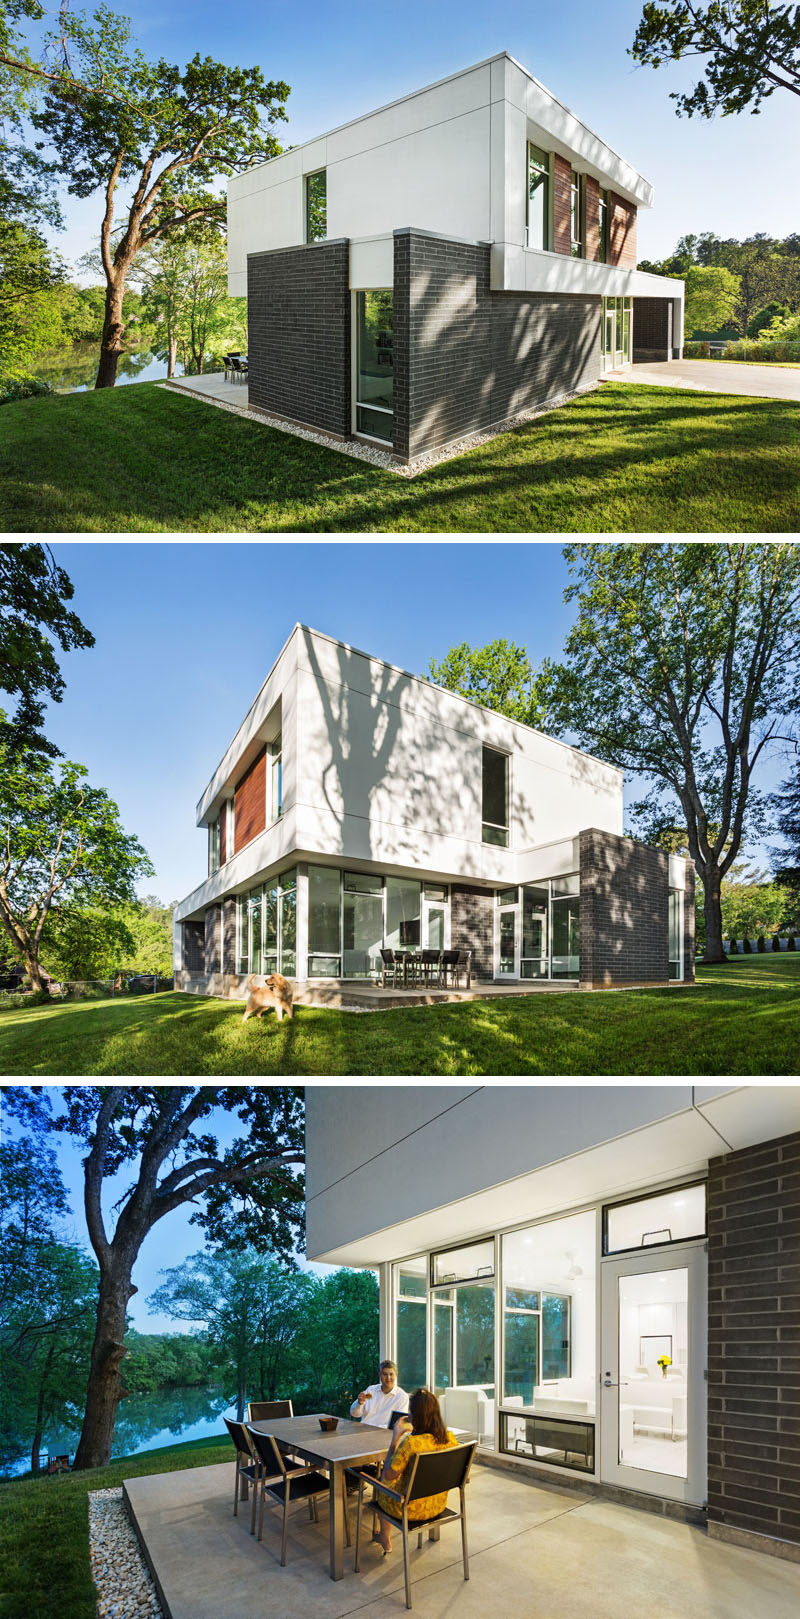 This modern house sits in on a lot that was once overgrown. The design of the house draws inspiration from some of the mid-century modern houses in the surrounding neighborhood.